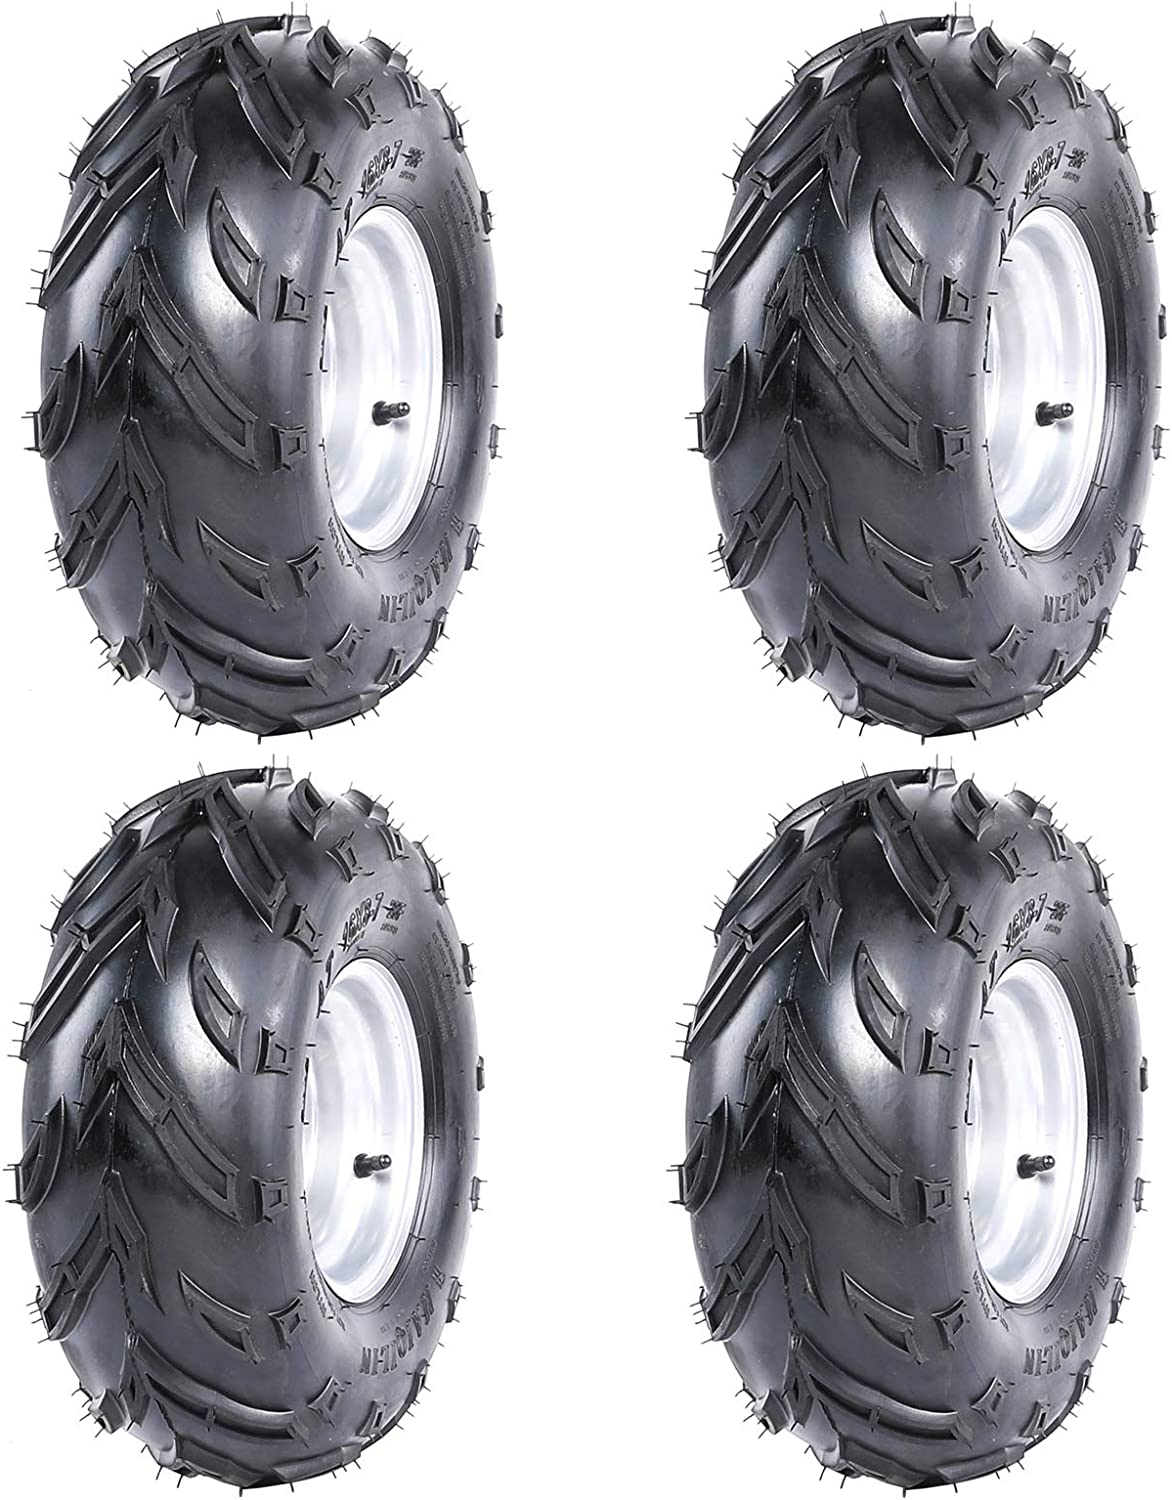 WPHMOTO 4PCS 16X8-7 Tires Now free shipping Wheels In a popularity and or Rim Rea Front Tubeless